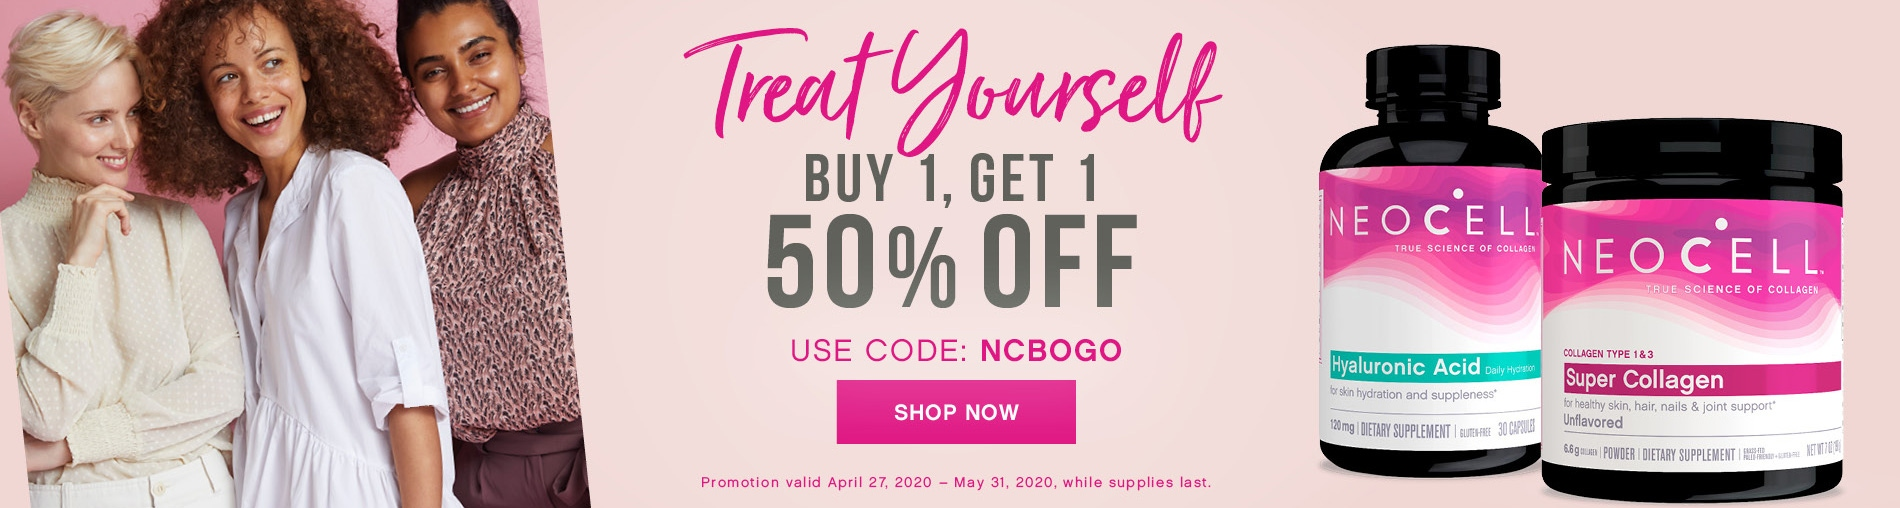 Treat Yourself! Buy 1, Get 1 50% OFF. Use Code: NCBOGO. Shop Now!